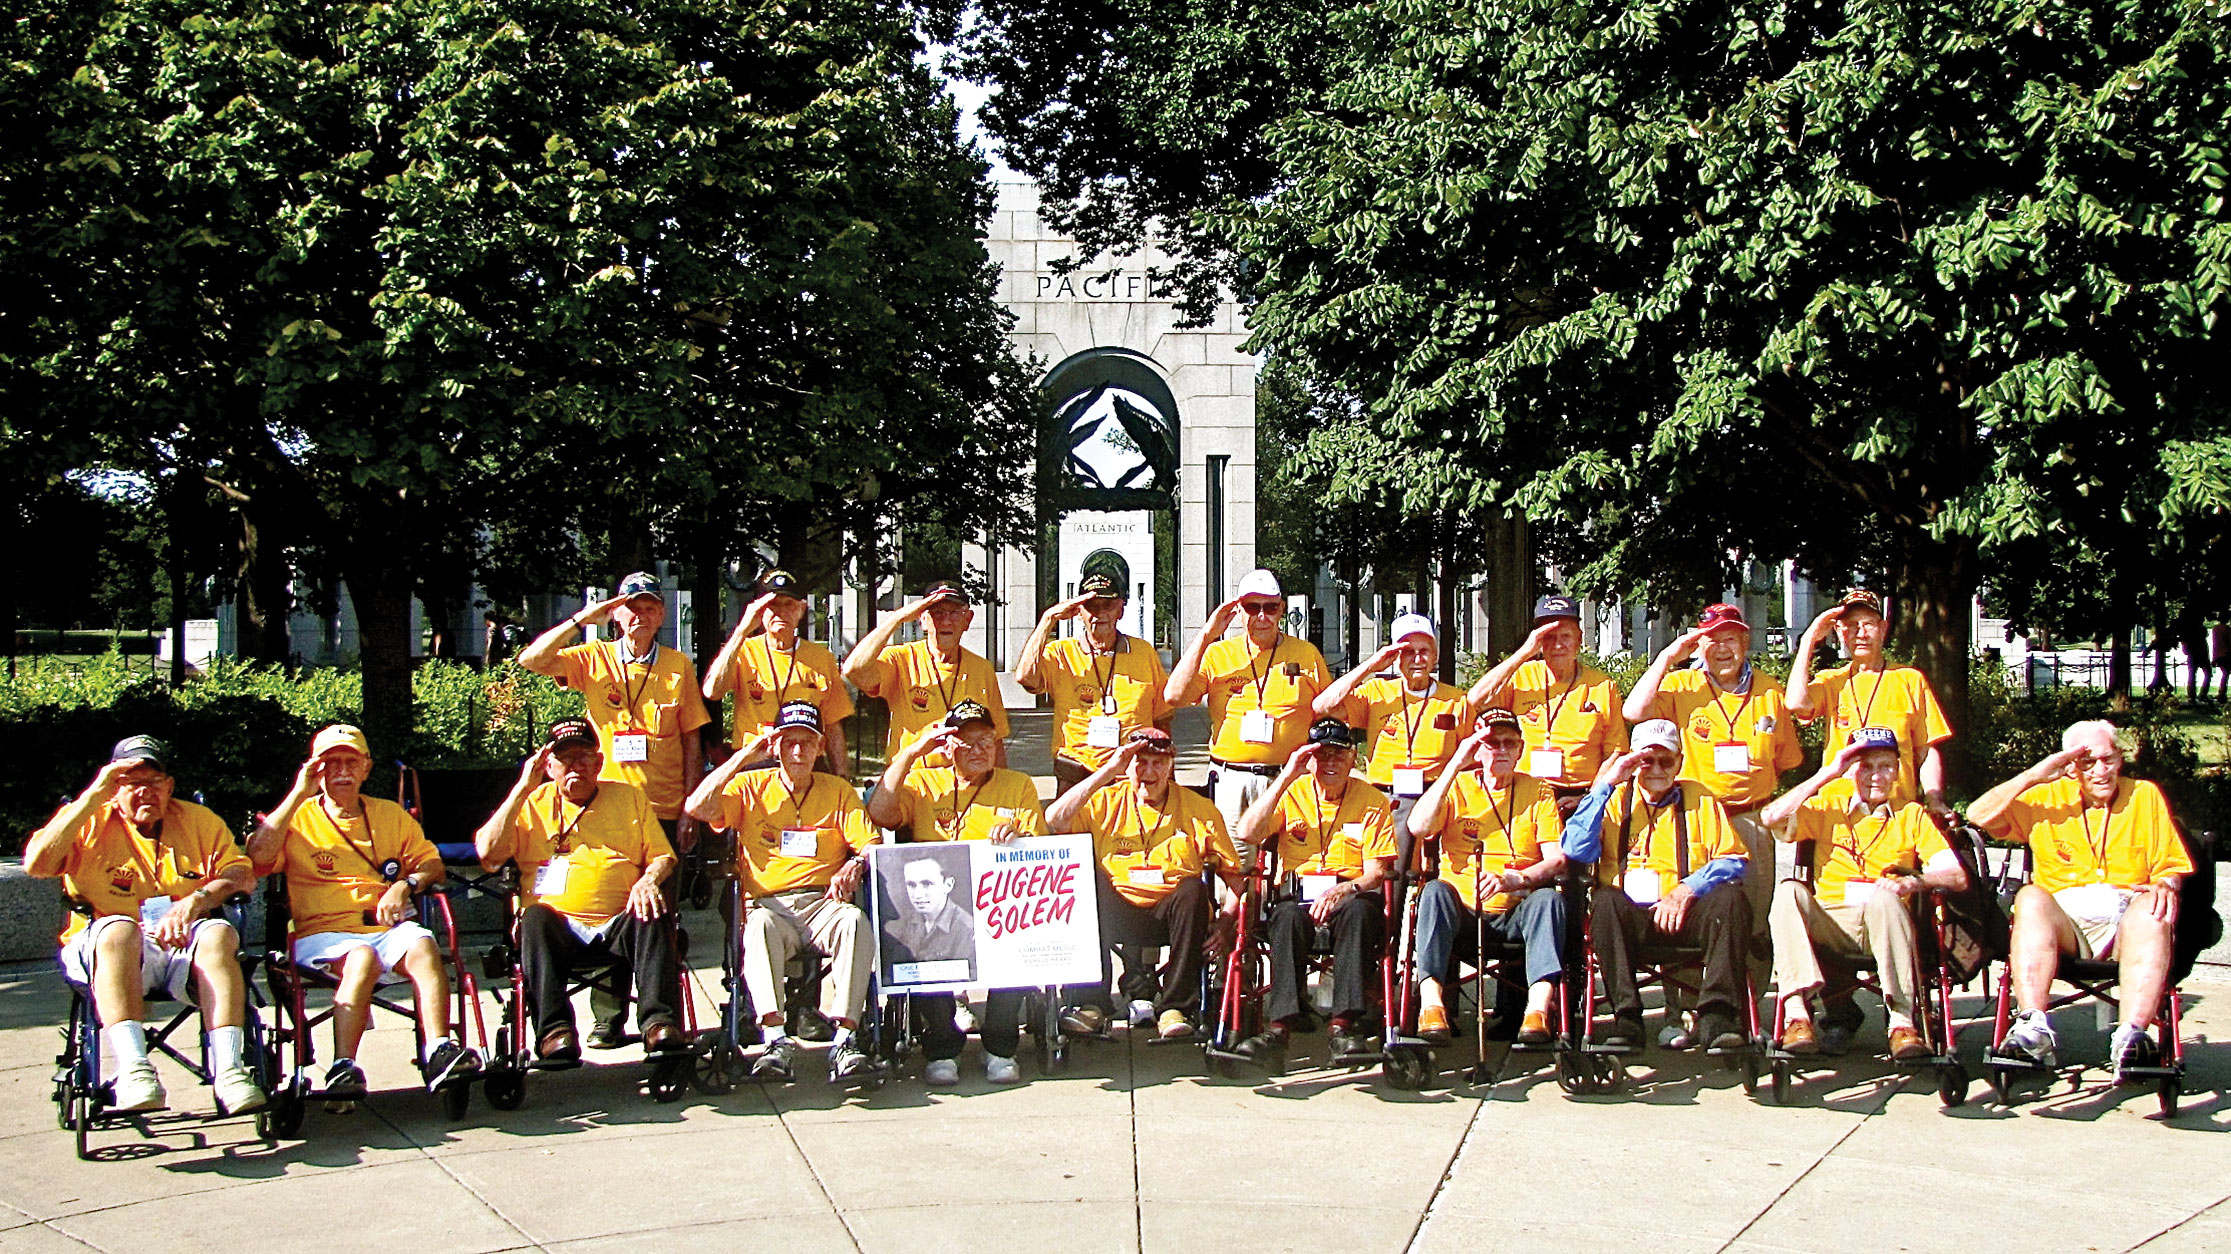 Van Christman (front row, fourth from left) holds a salute along with other members of his Honor Flight Arizona group at the World War II Memorial in Washington, D.C.